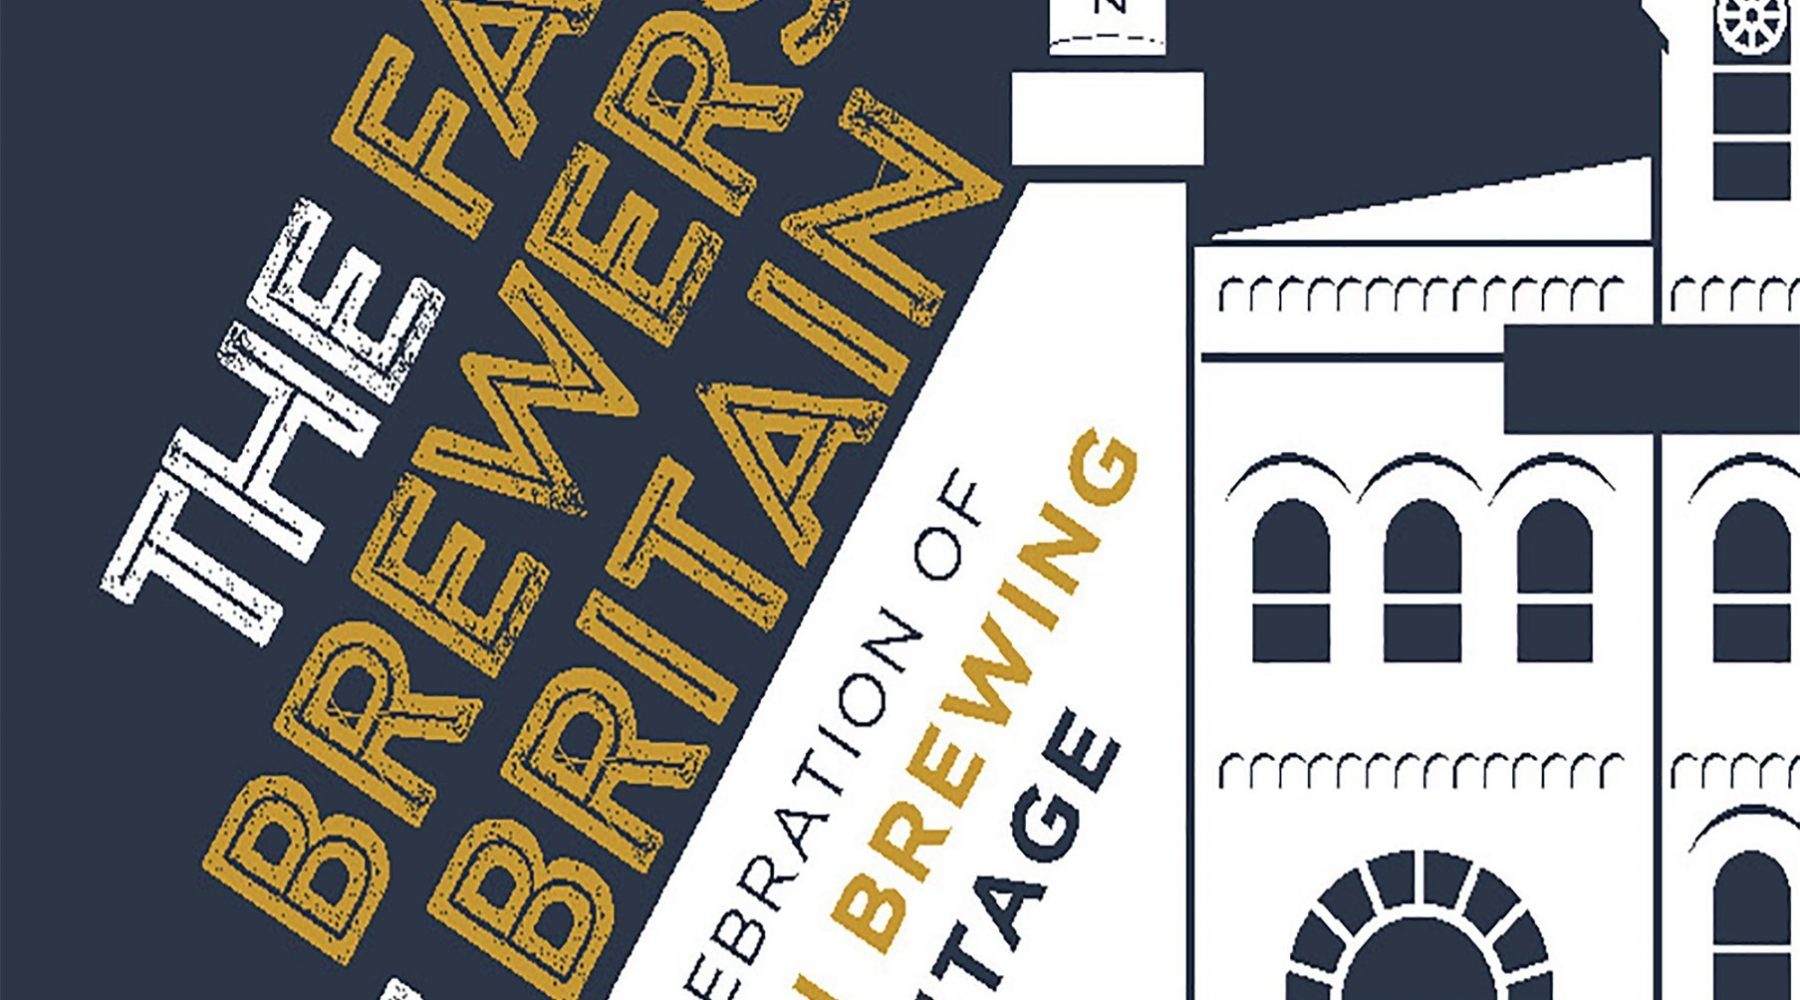 Keighley brewery featured in new CAMRA book